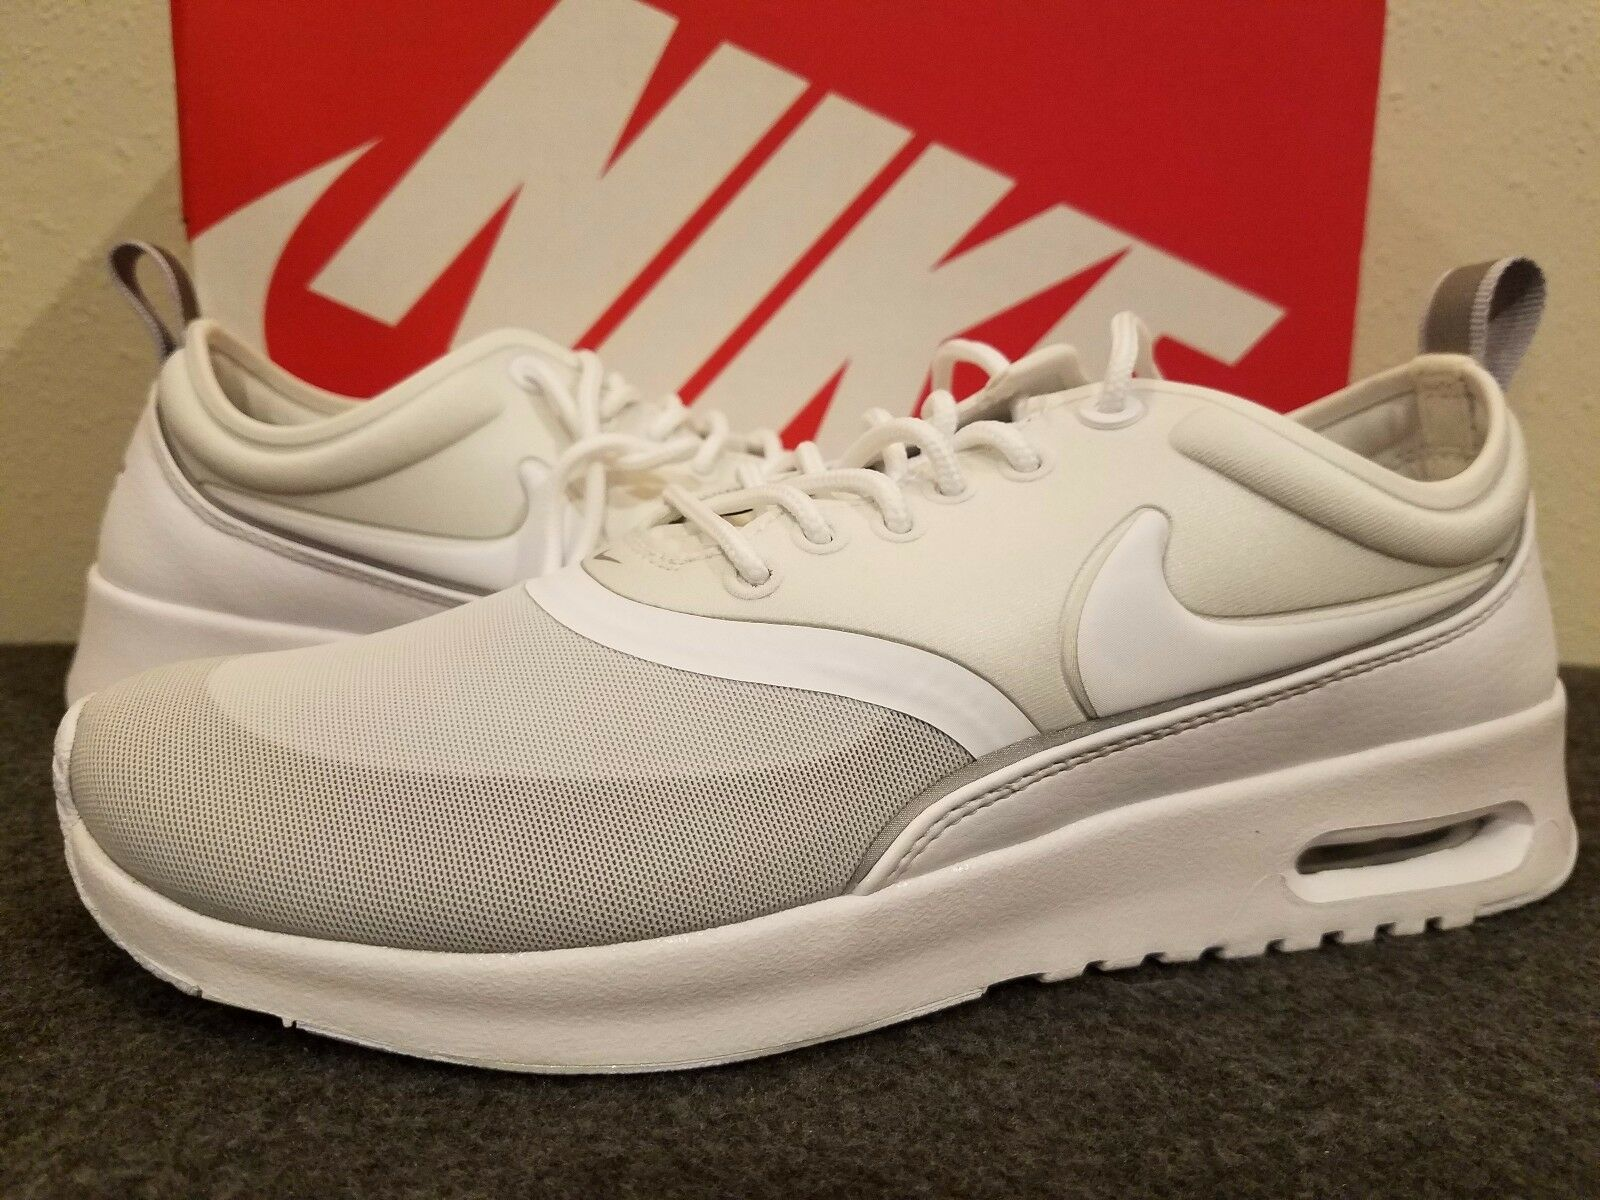 Women's Nike Air Max Thea Ultra Running Shoes White/Met Slv 844926 100  6 ~ 7.5